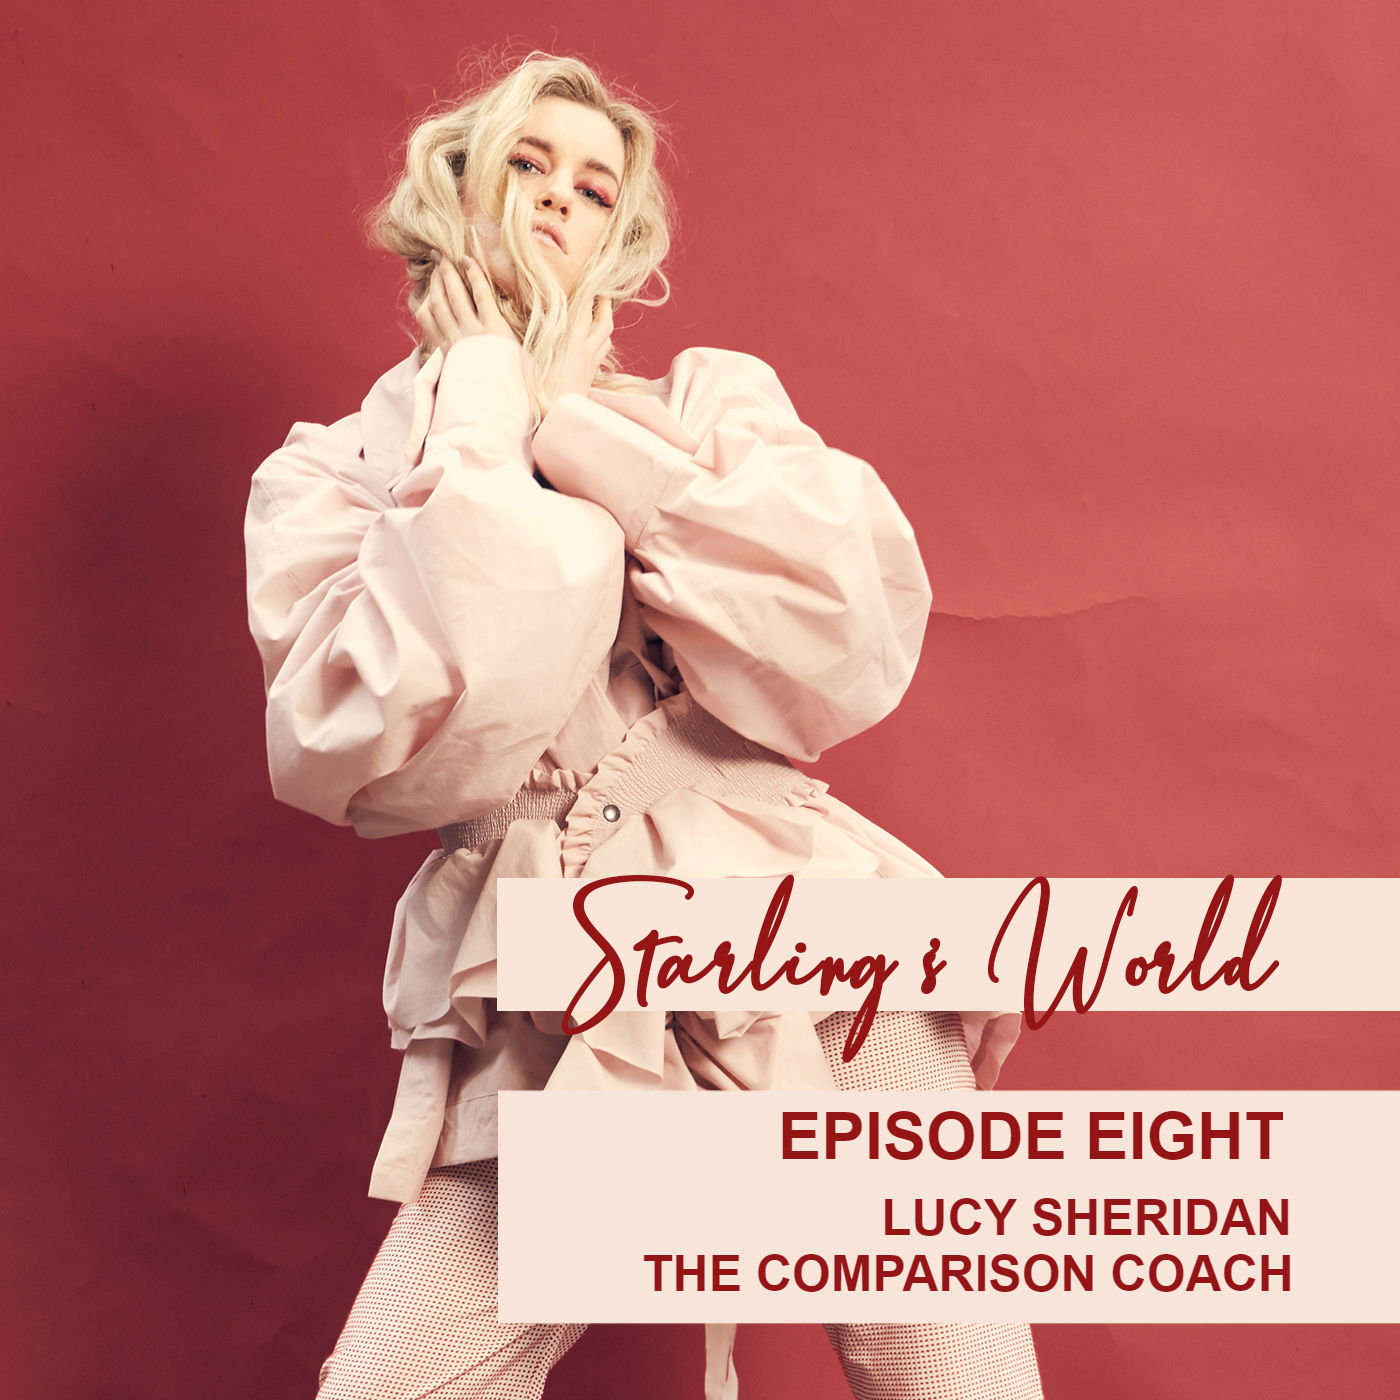 Starling's World meets The Comparison Coach Lucy Sheridan - Episode 8